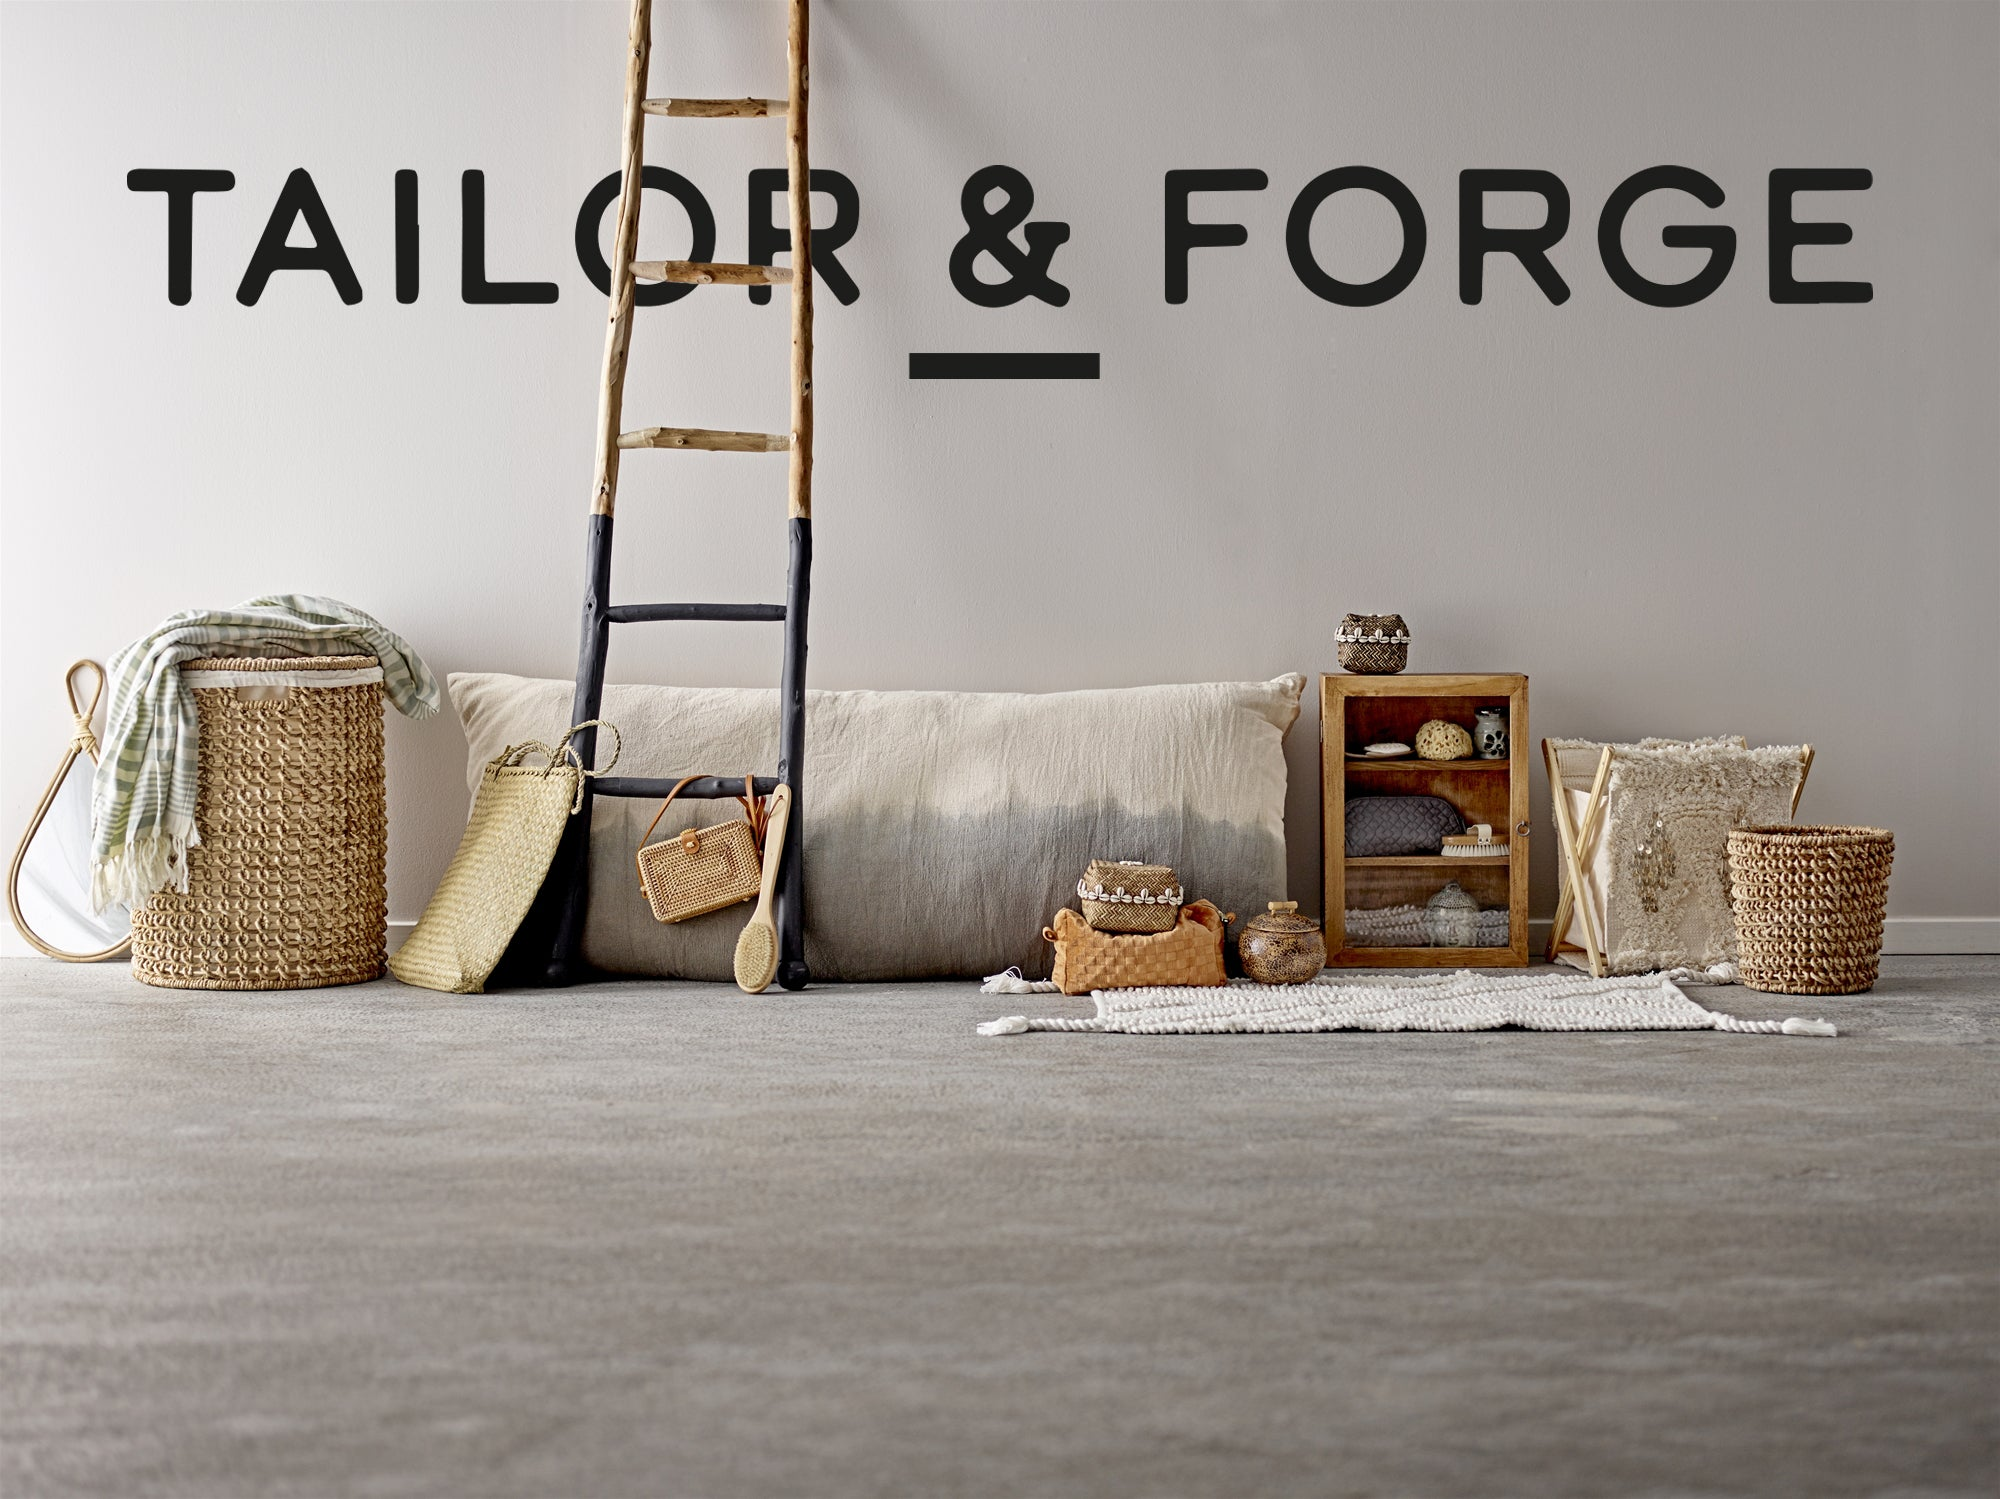 Tailor & Forge